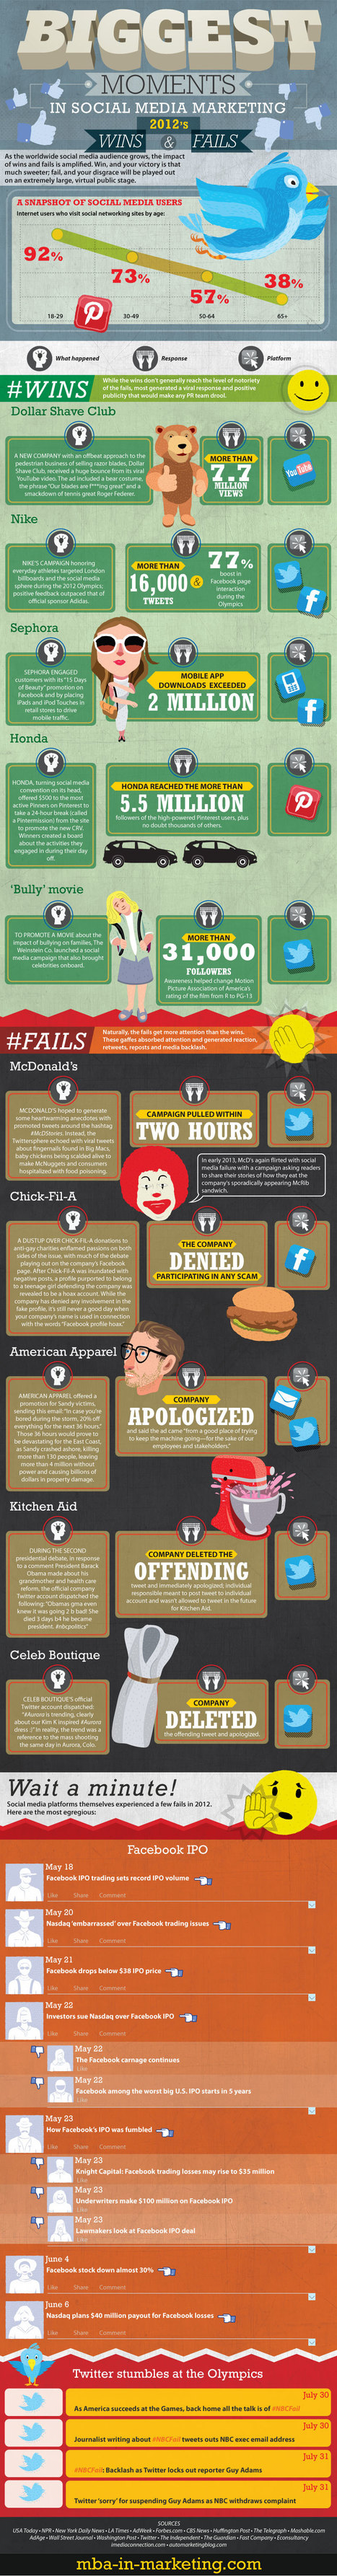 Biggest Moments in Social Media Marketing [infographic] | DV8 Digital Marketing Tips and Insight | Scoop.it